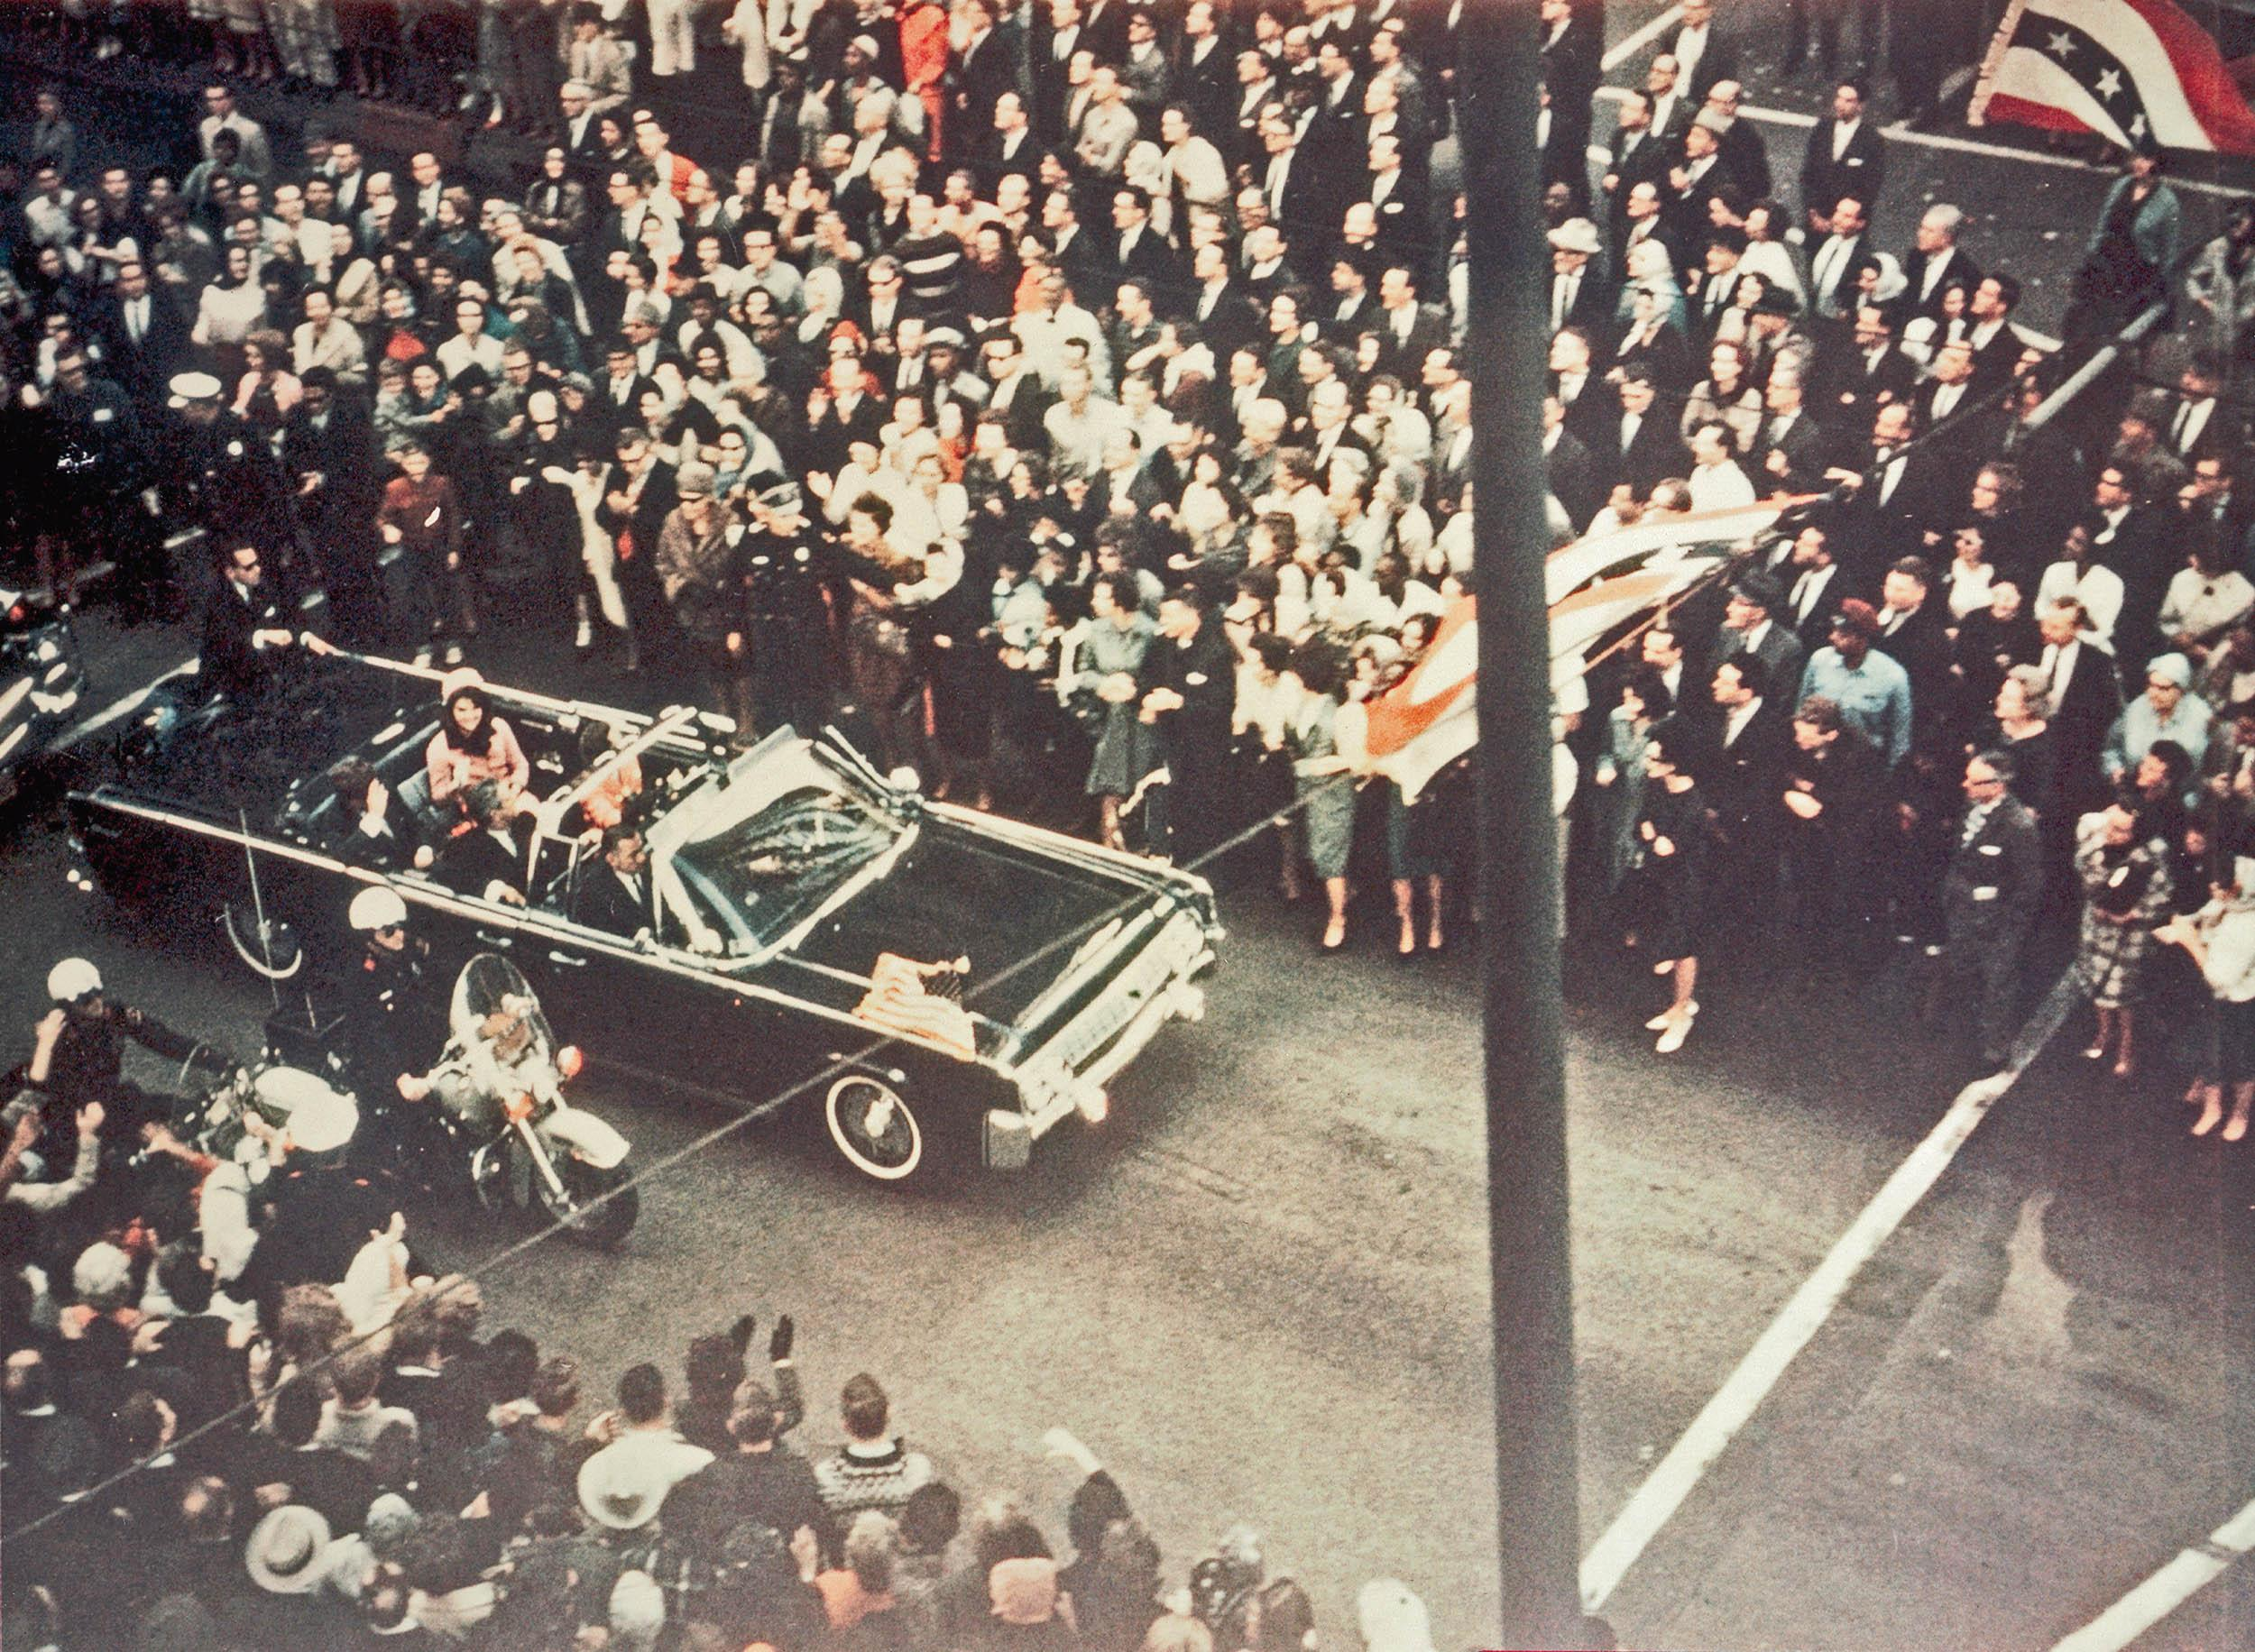 the assassination of kennedy and the conspiracies The assassination of jfk and the conspiracy theories that followed have proved irresistible to writers and artists, from oliver stone to stephen king by colin kidd.